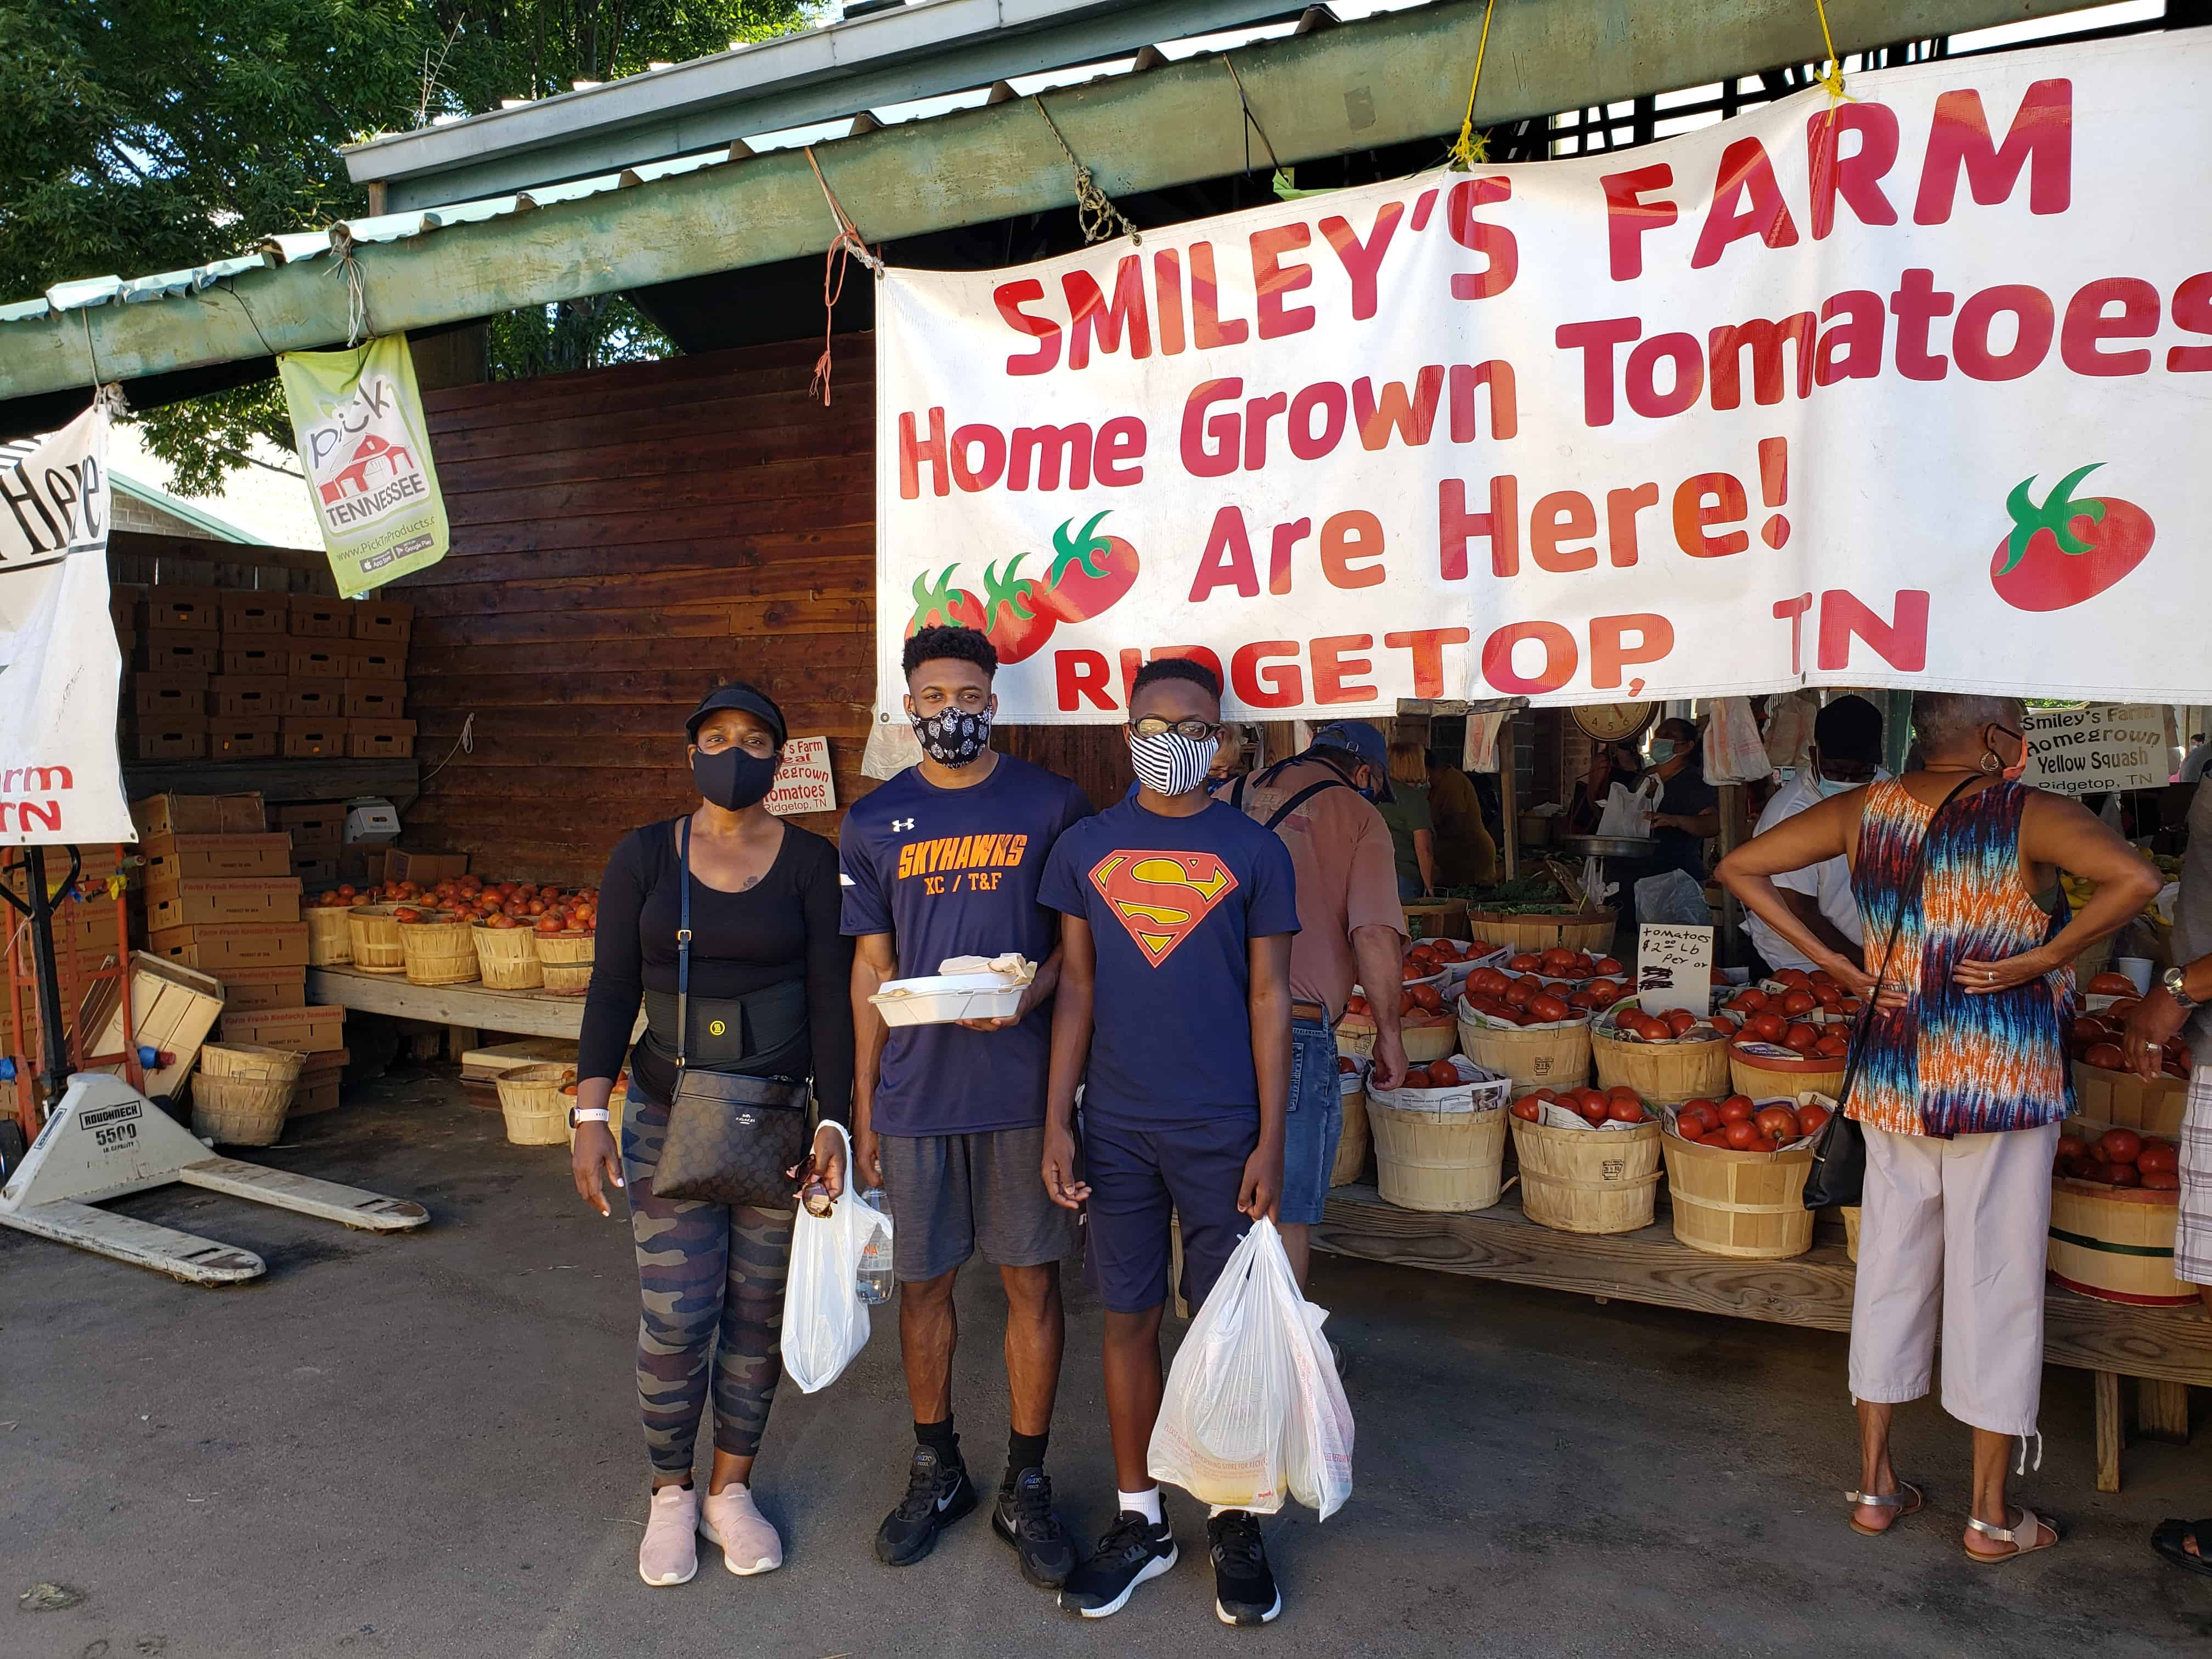 Nichelle Martin snapped a couple of pics while supporting a local farmers market during National Farmers Market Week.